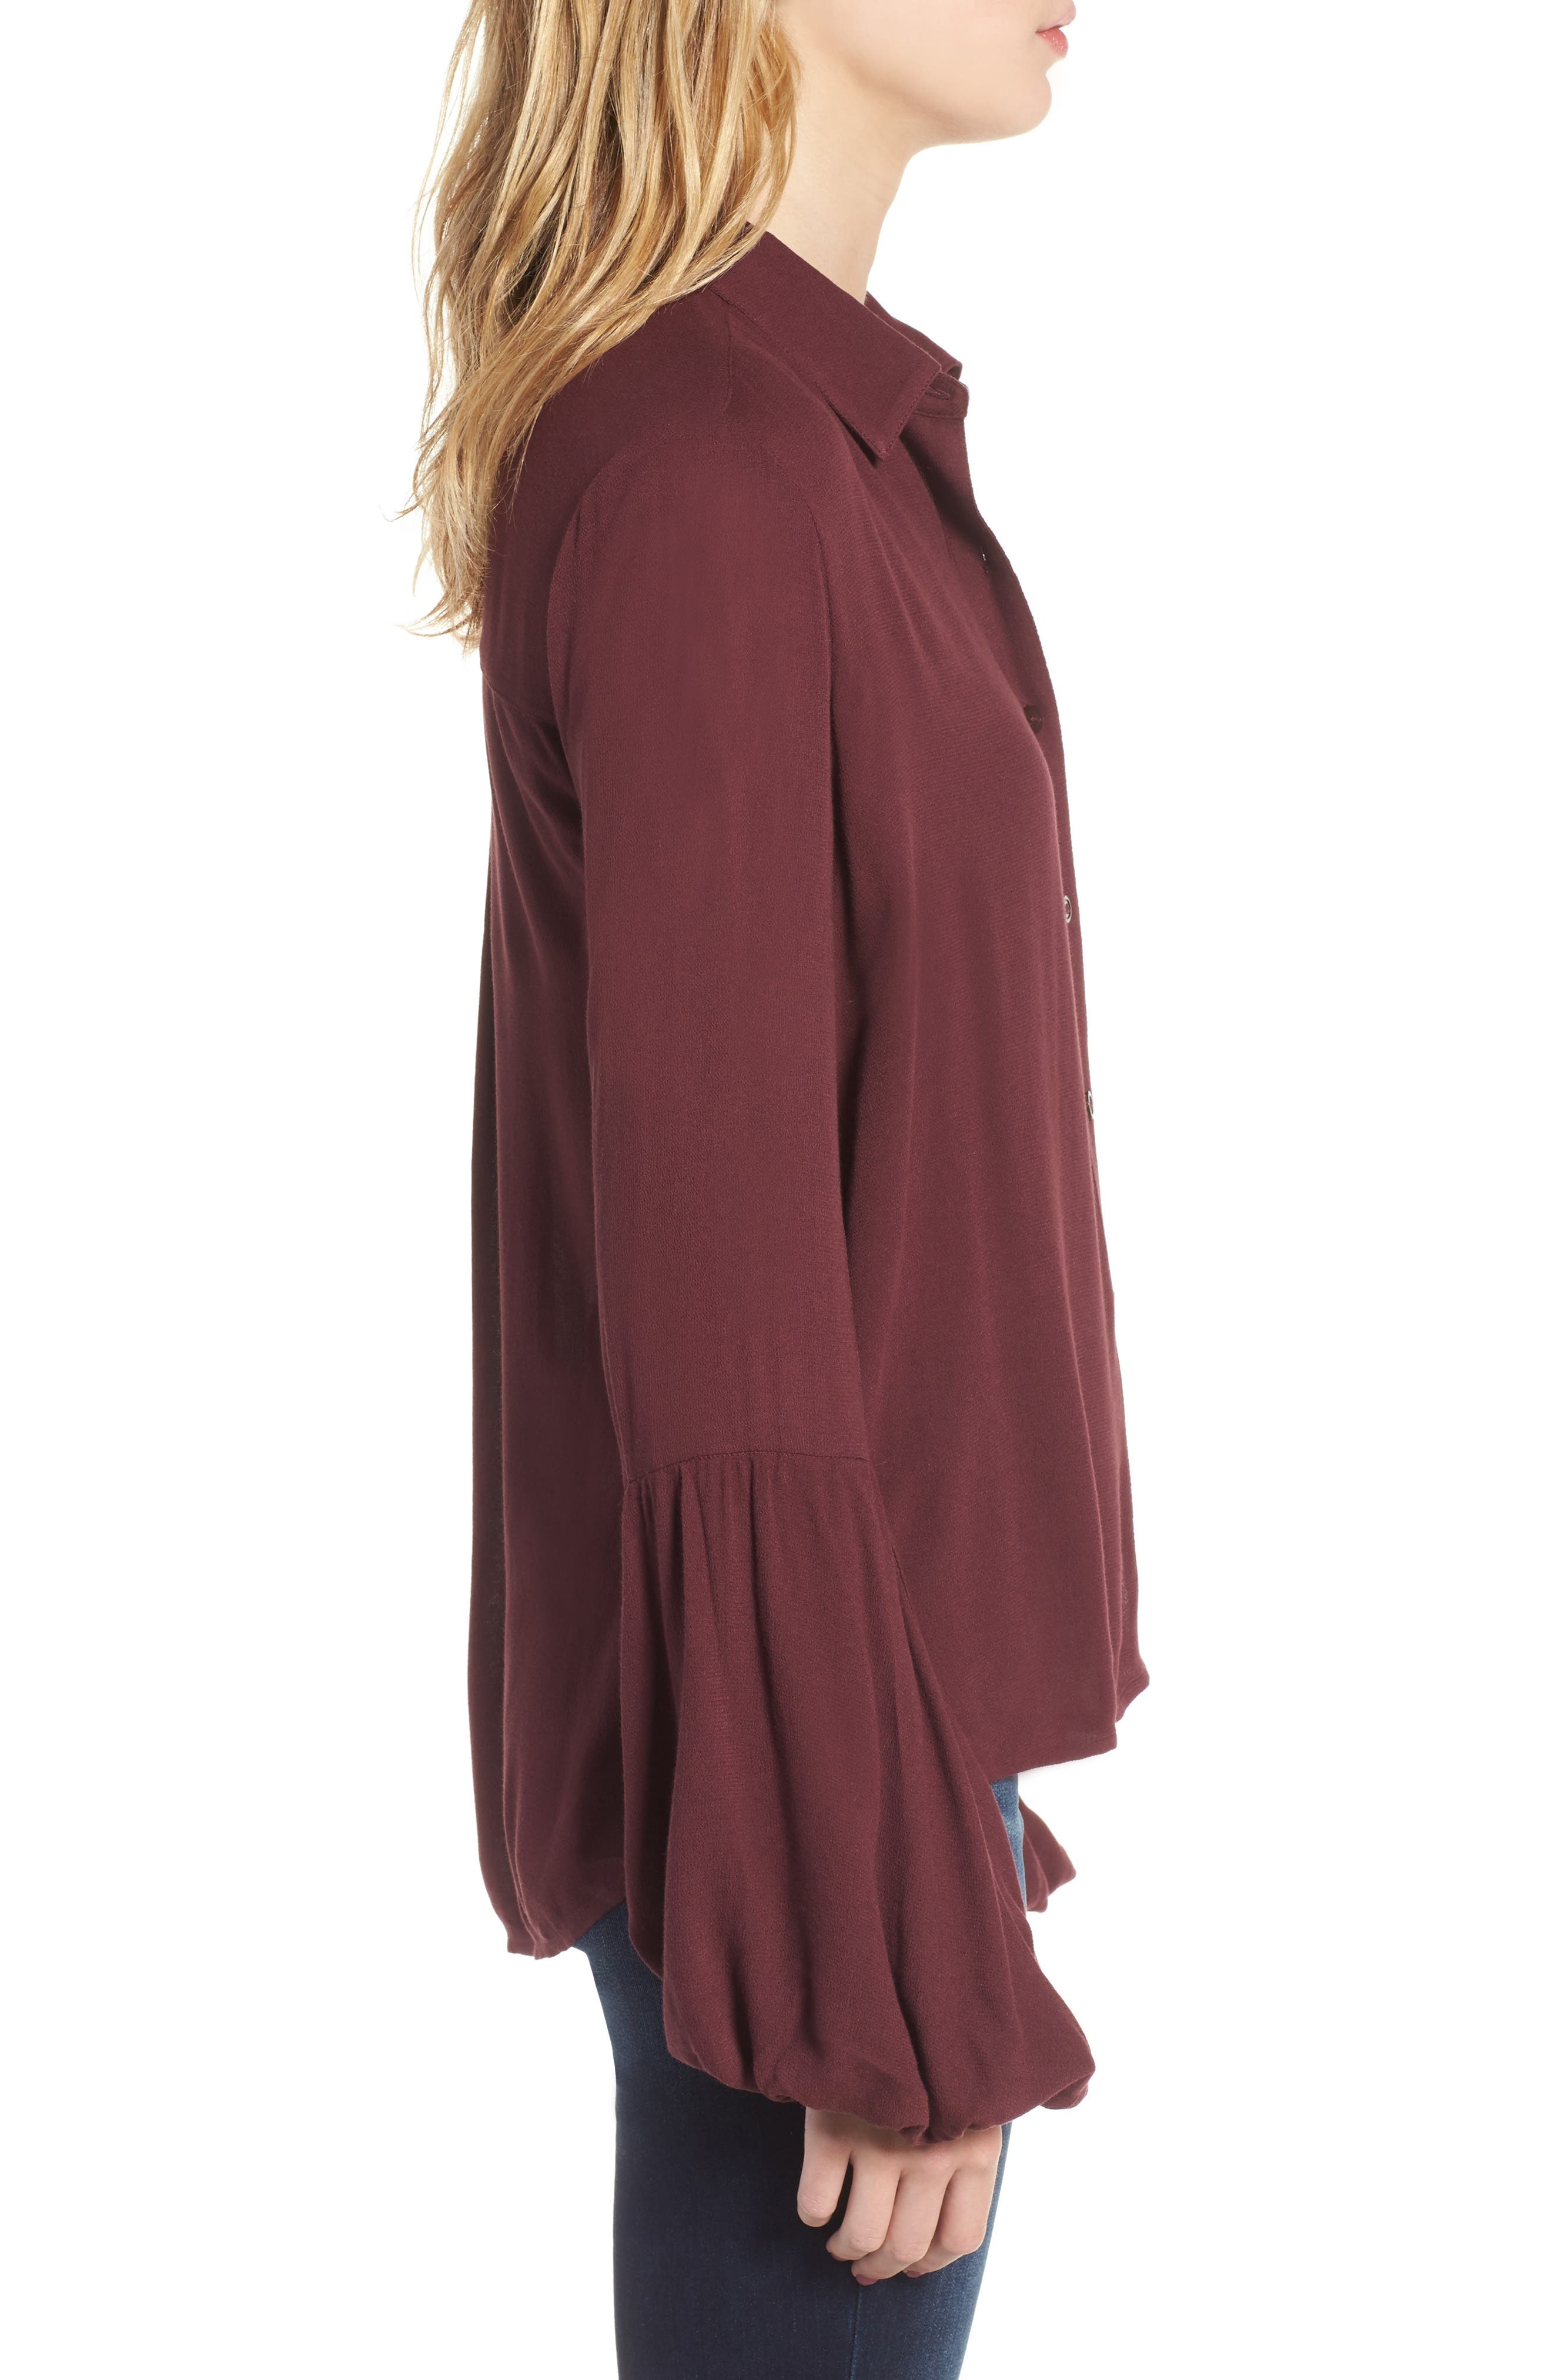 Balloon Sleeve Top,                             Alternate thumbnail 3, color,                             Burgundy Royale